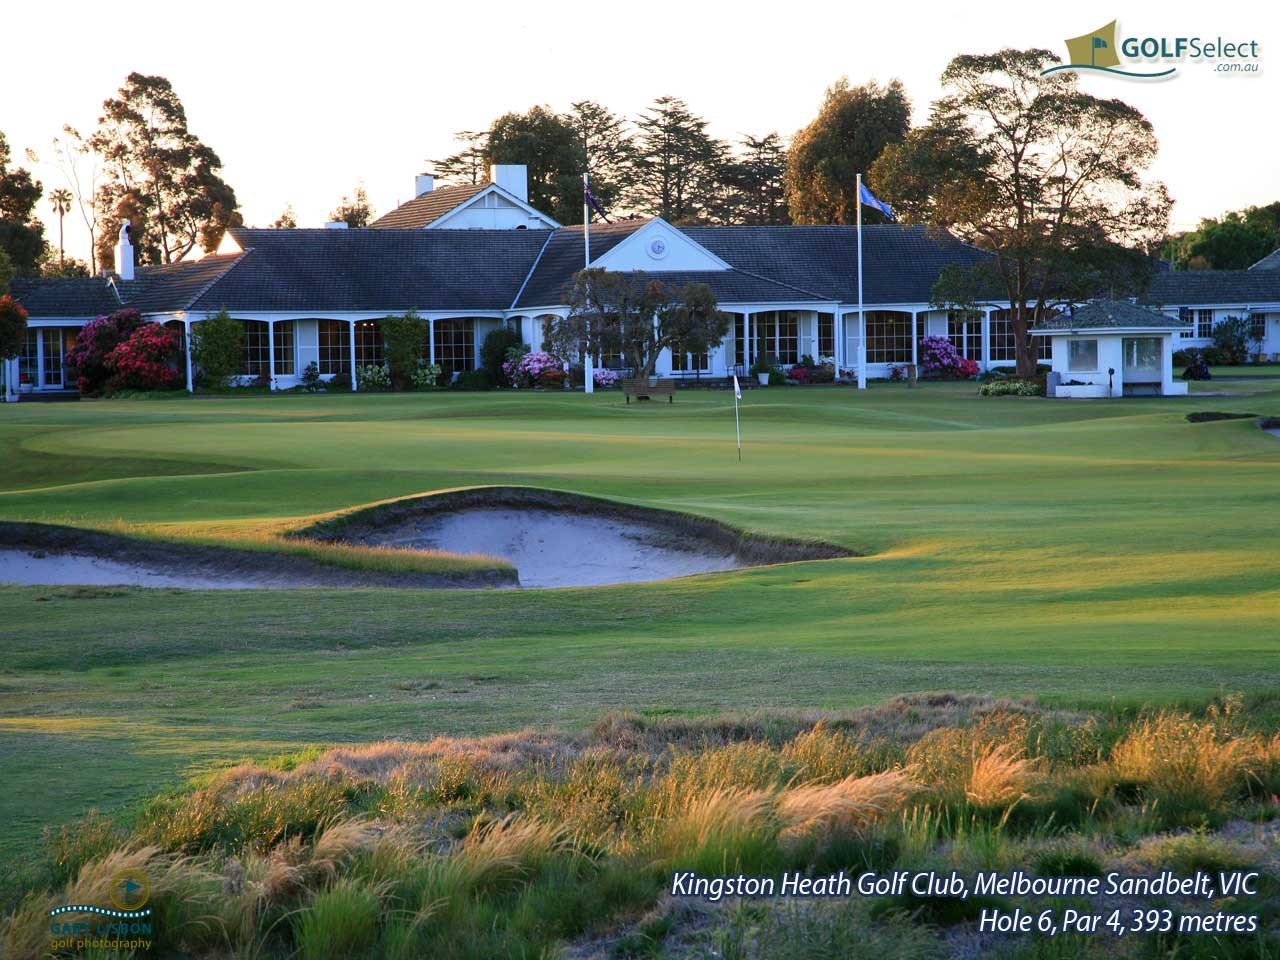 Kingston Heath Golf Club Hole 6, Par 4, 393 metres